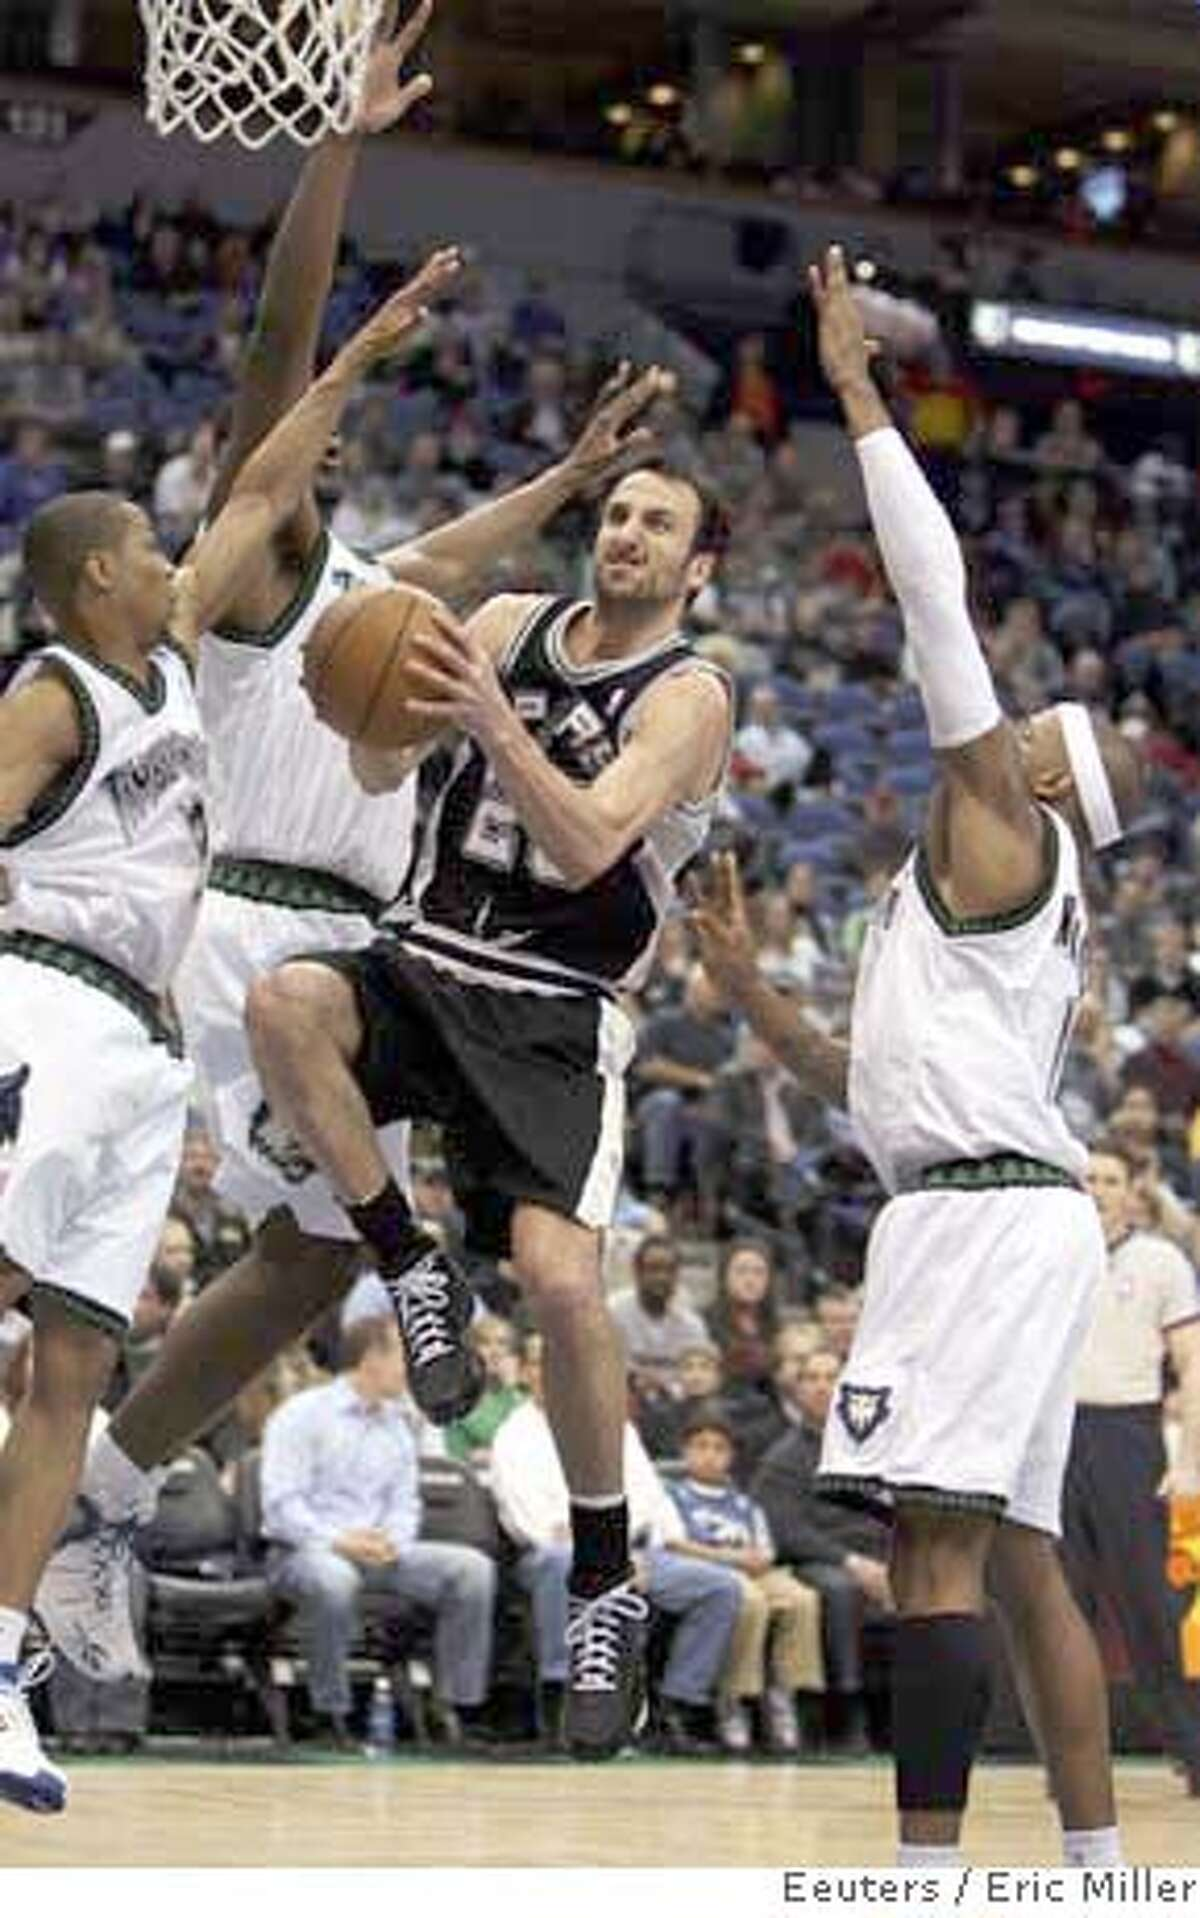 San Antonio Spurs guard Manu Ginobili (C) attempts a layup around Minnesota Timberwolves guard Sebastian Telfair (L), forward Al Jefferson and guard Rashad McCants (R) during the first half of their NBA basketball game in the Target Center in Minneapolis, February 21, 2008. REUTERS/Eric Miller (UNITED STATES)